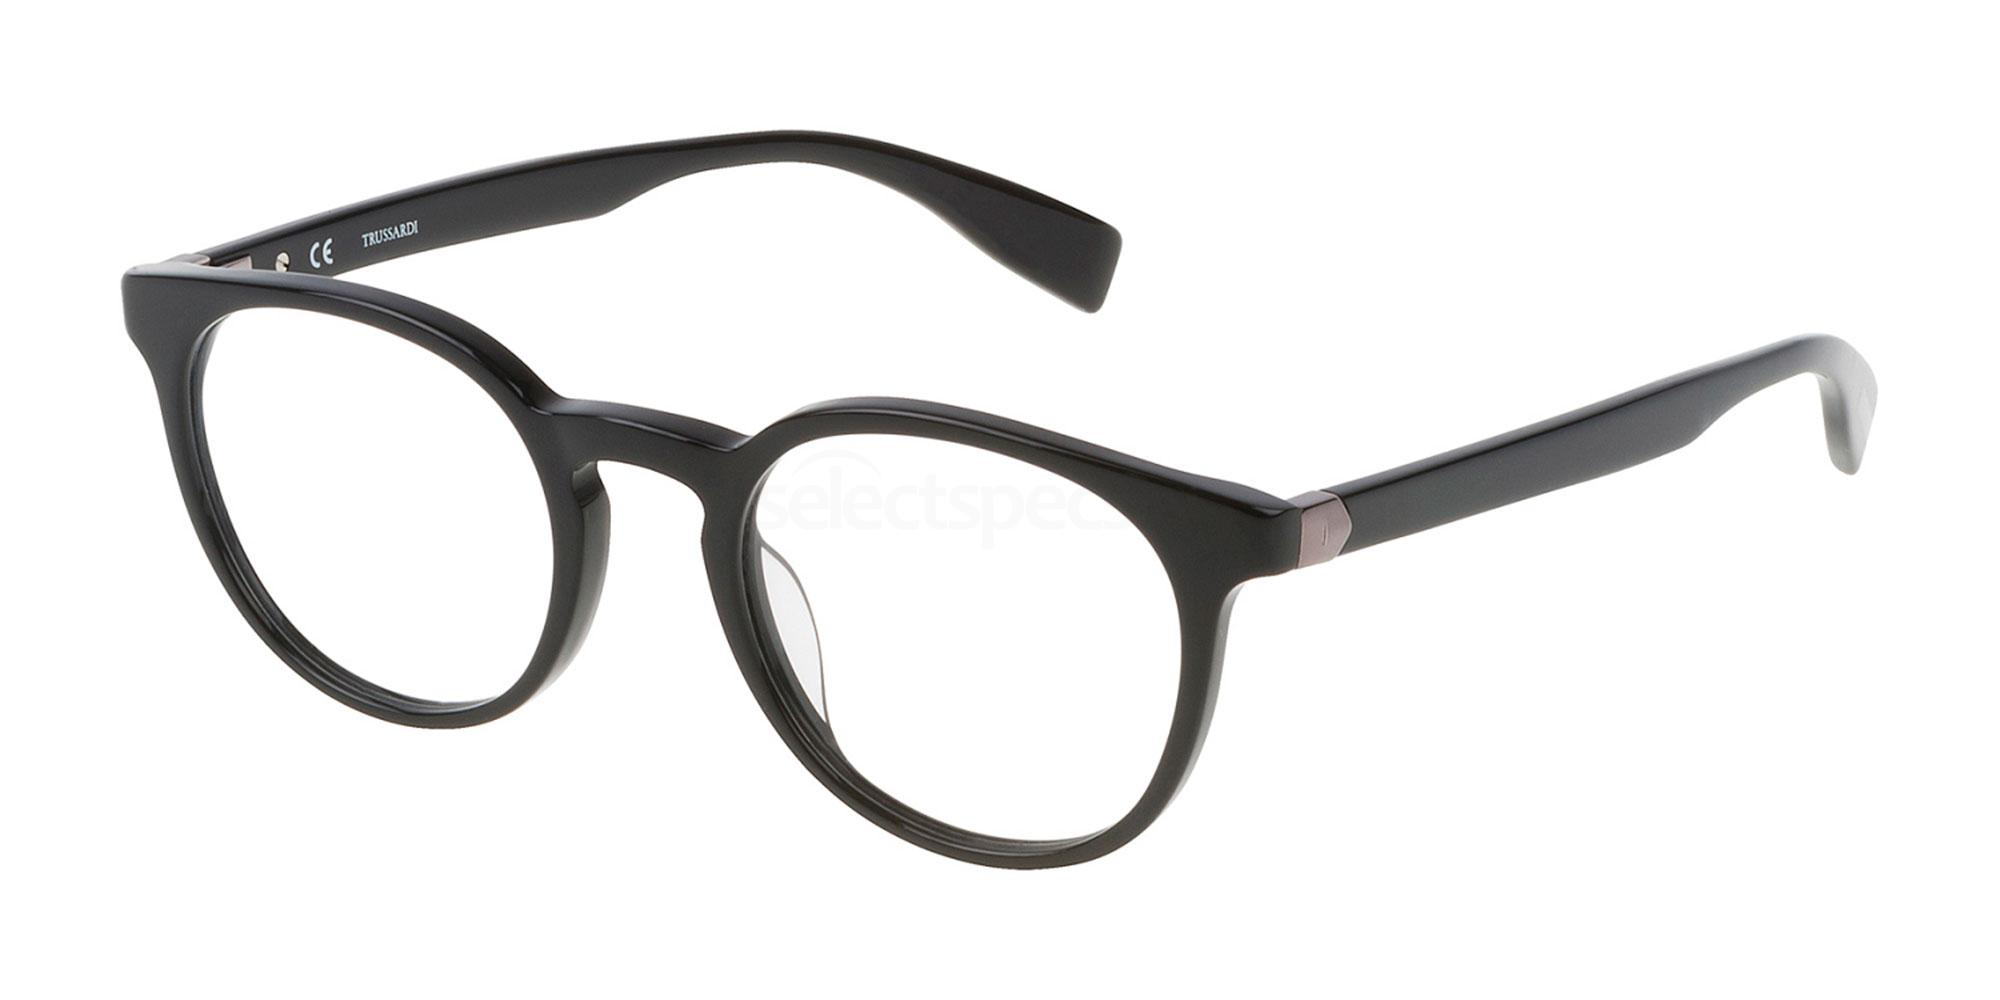 0700 VTR037 Glasses, Trussardi